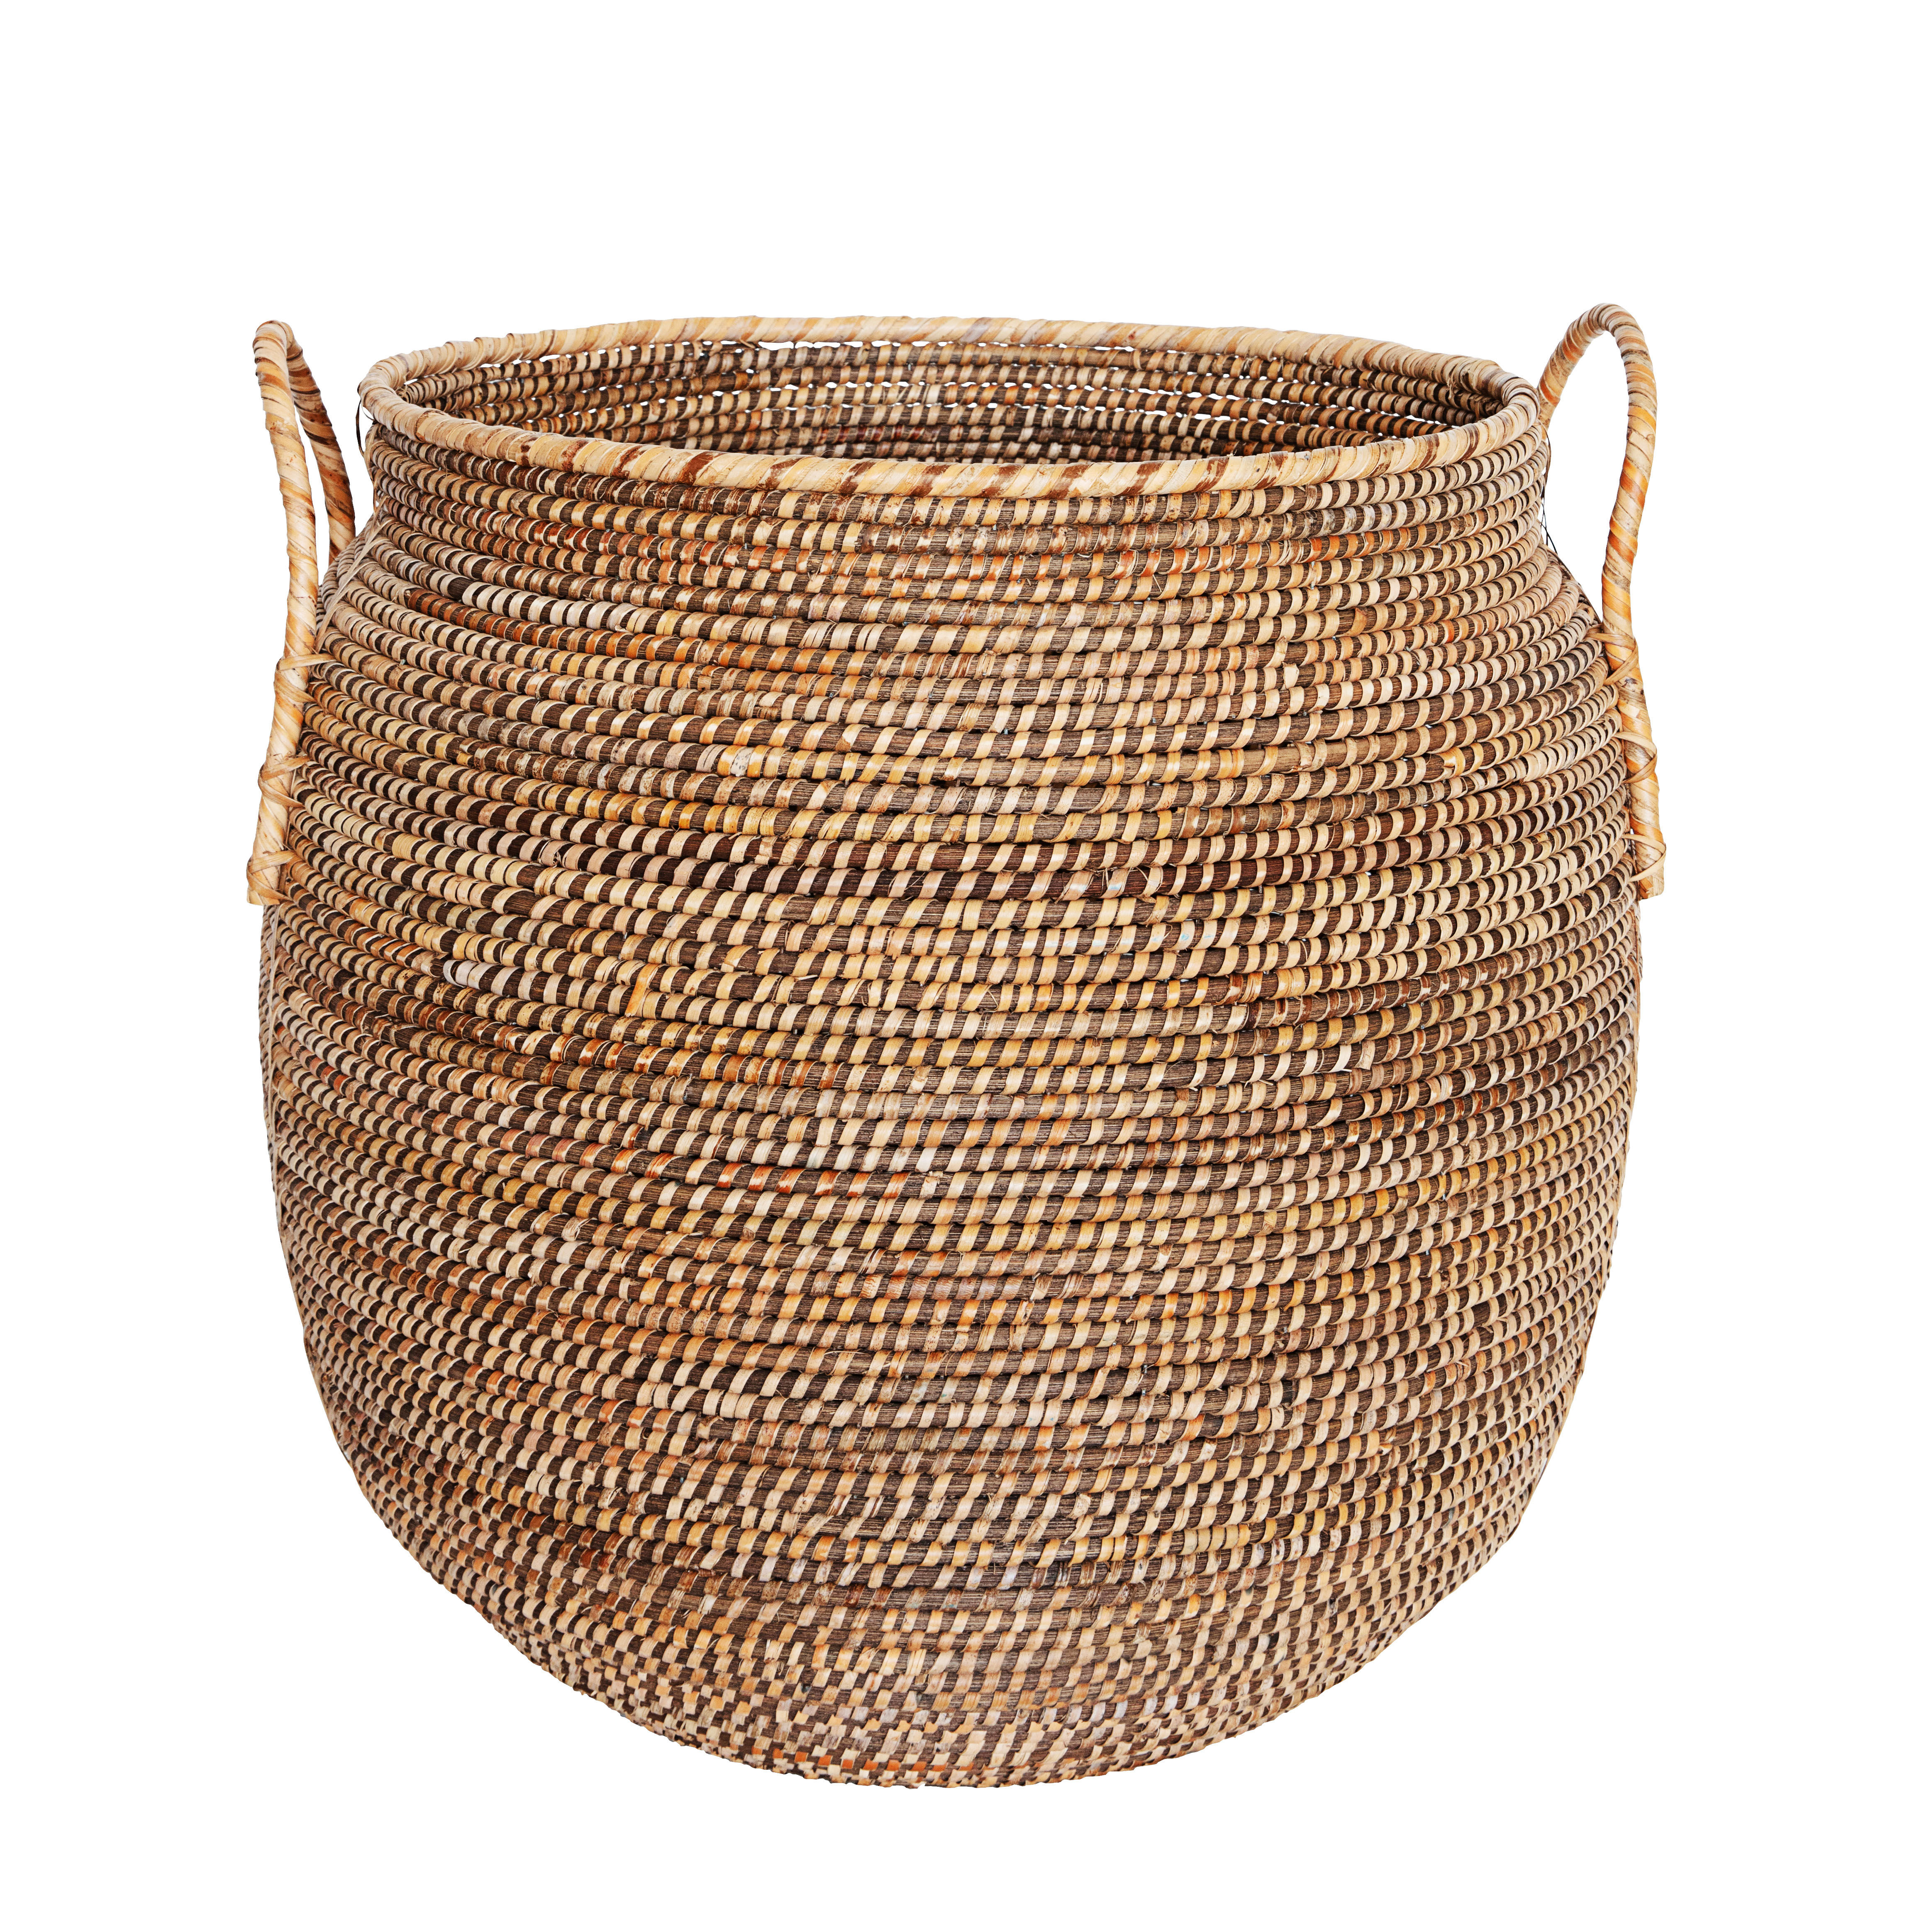 Decoration - Boxes & Baskets - Azeema Basket - / Rattan - Ø 53 x H 64 cm without lid by House Doctor - Ø 53 x H 64 cm / Rattan - Rattan